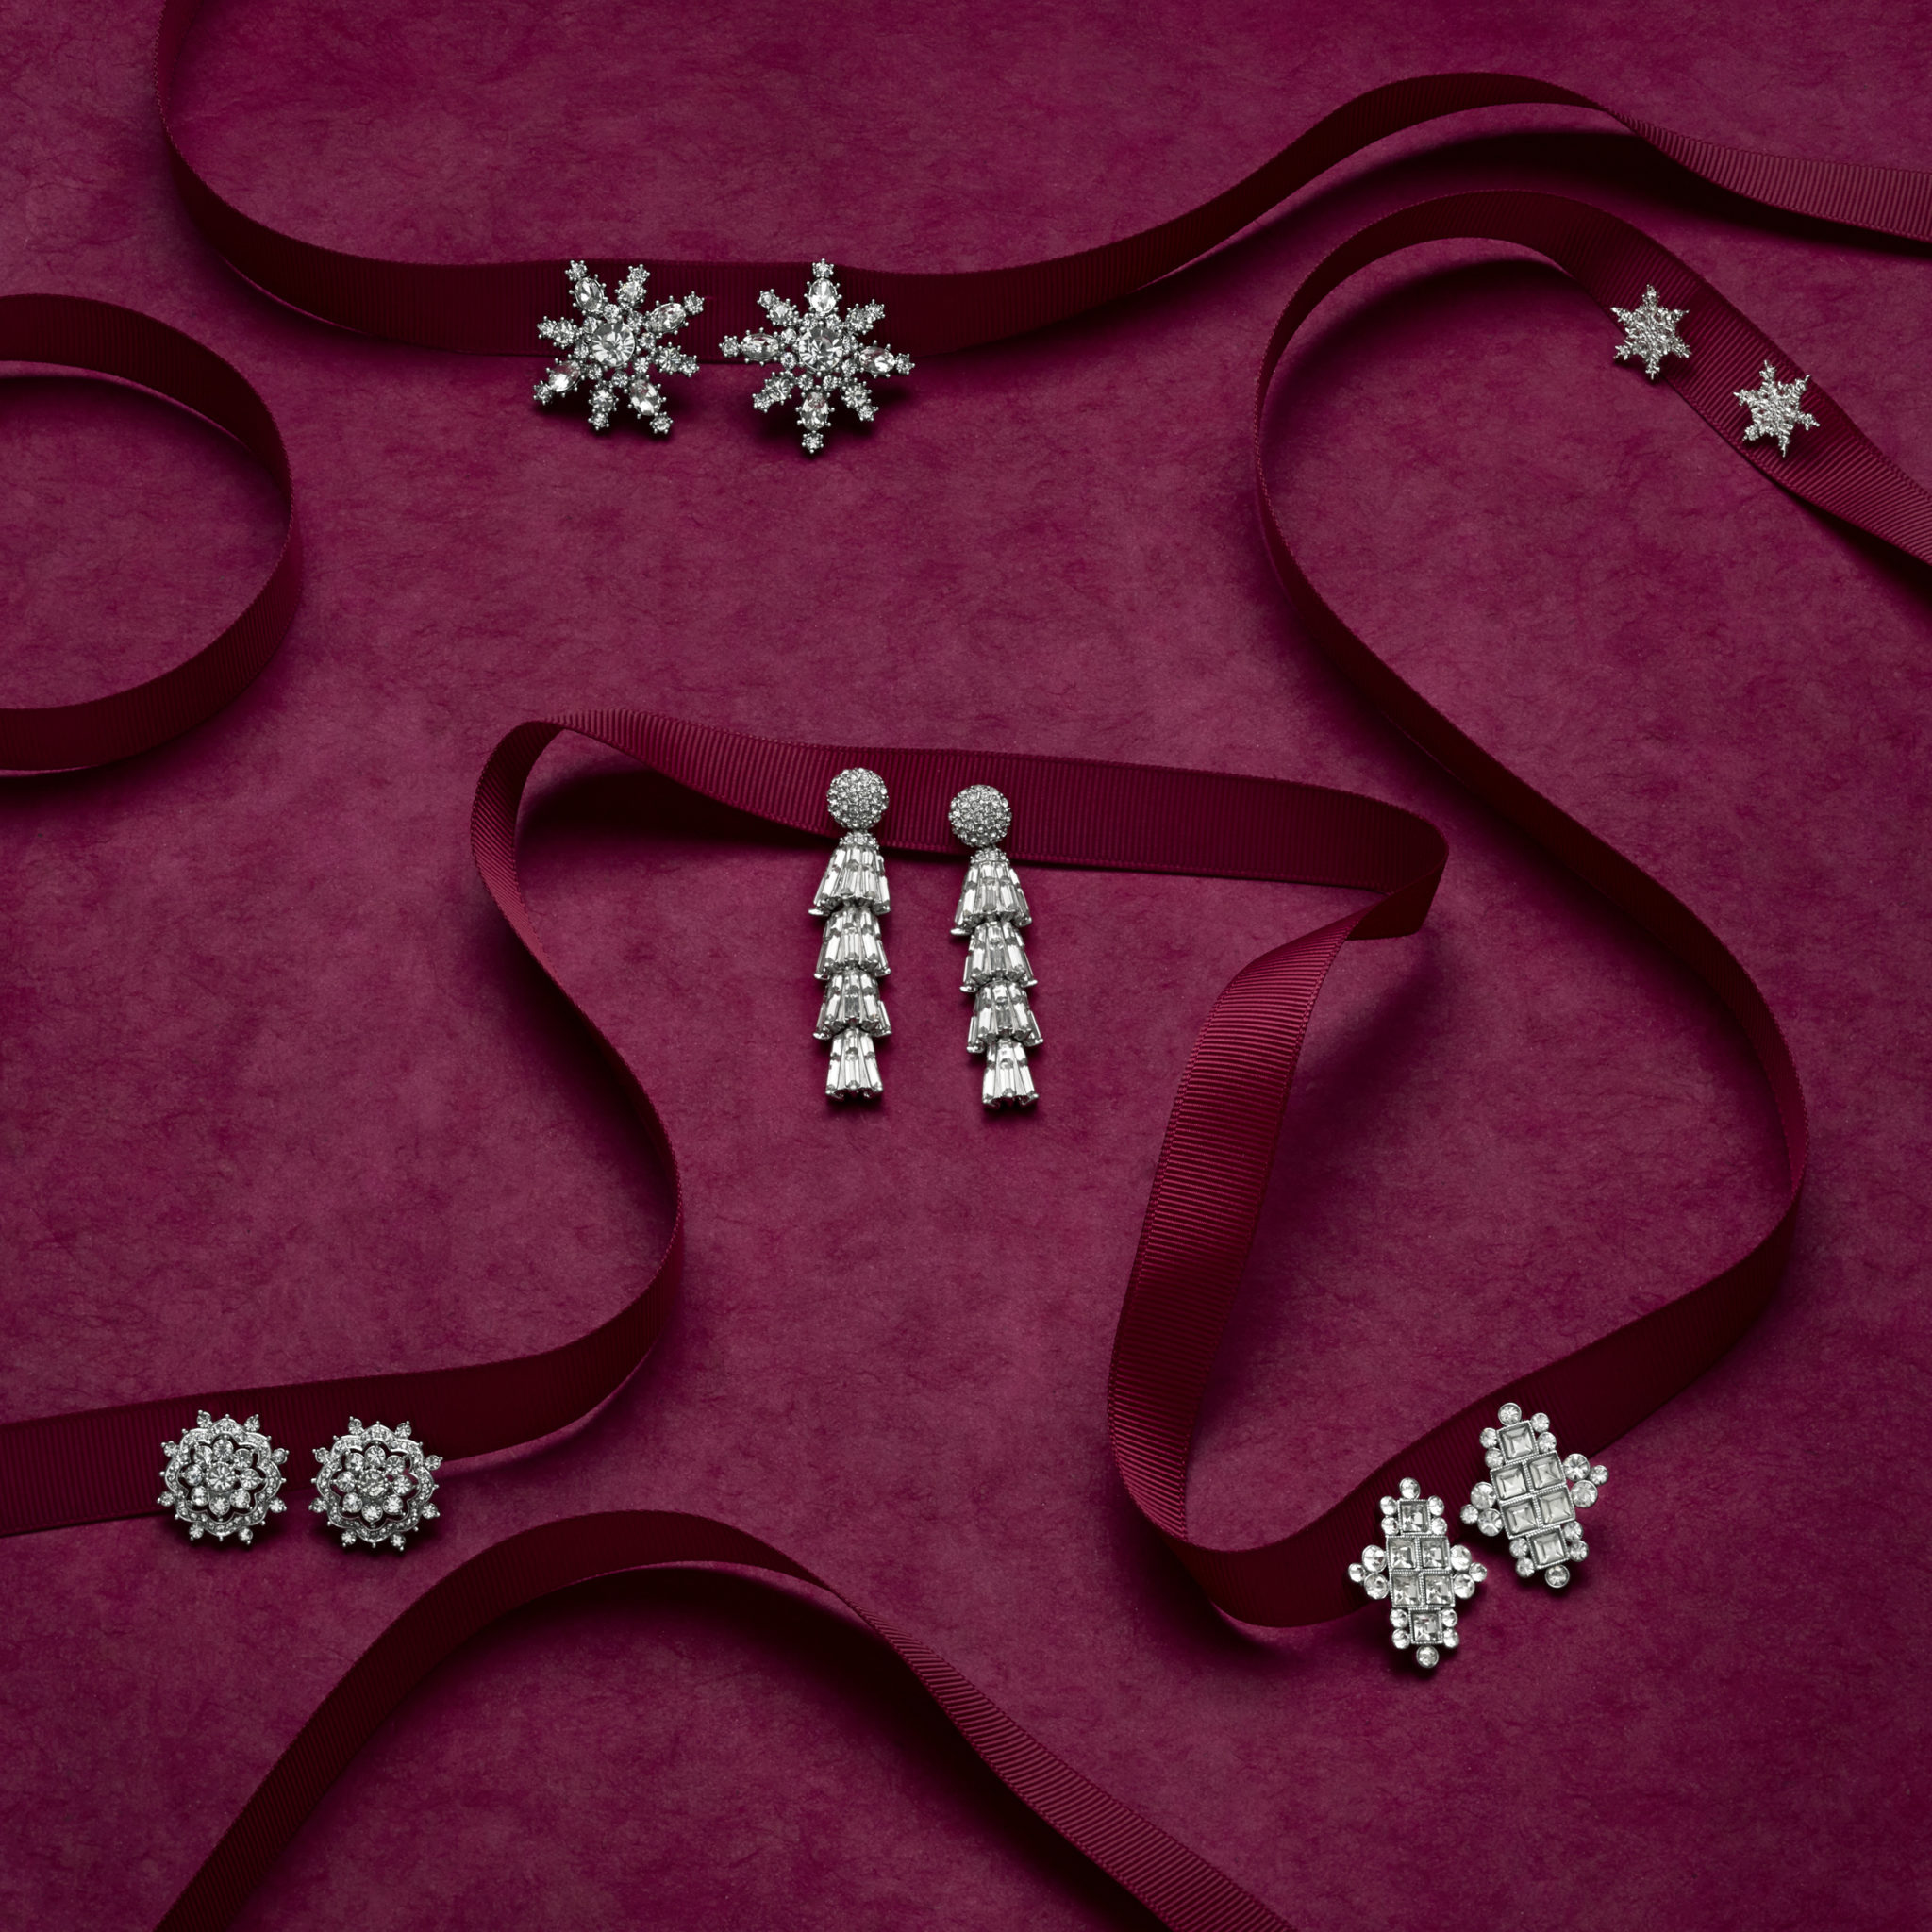 marketing still life photograph of silver and diamond earrings decorating burgundy ribbon on a burgundy background